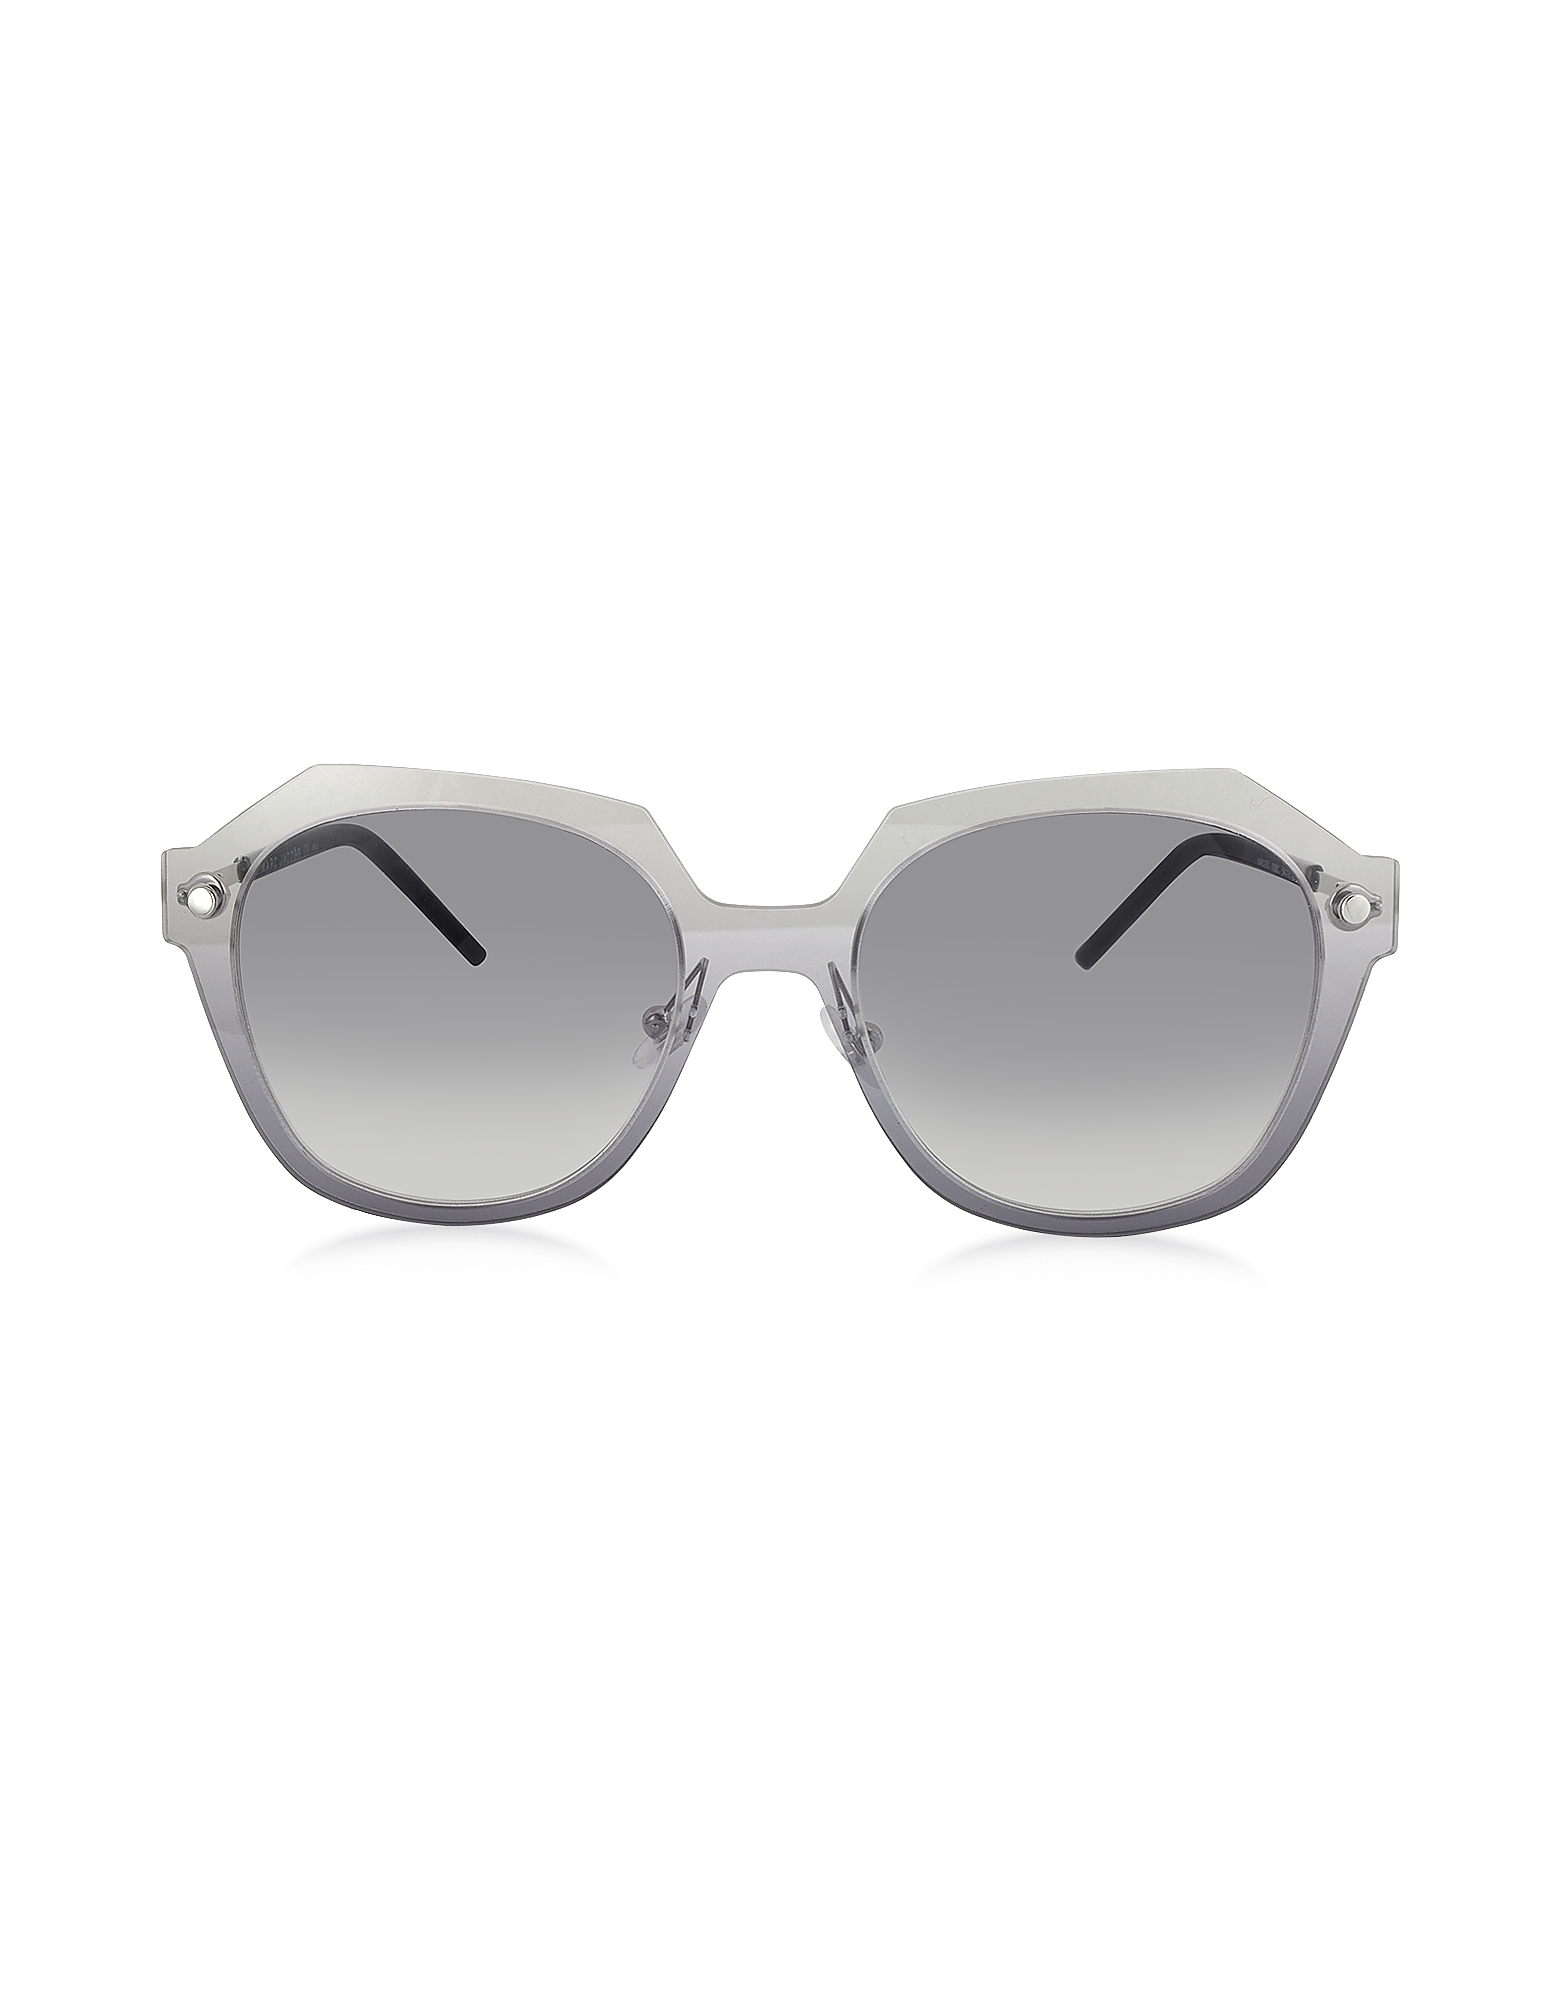 Marc Jacobs Sunglasses, MARC 28/S Acetate Geometric Women's Sunglasses